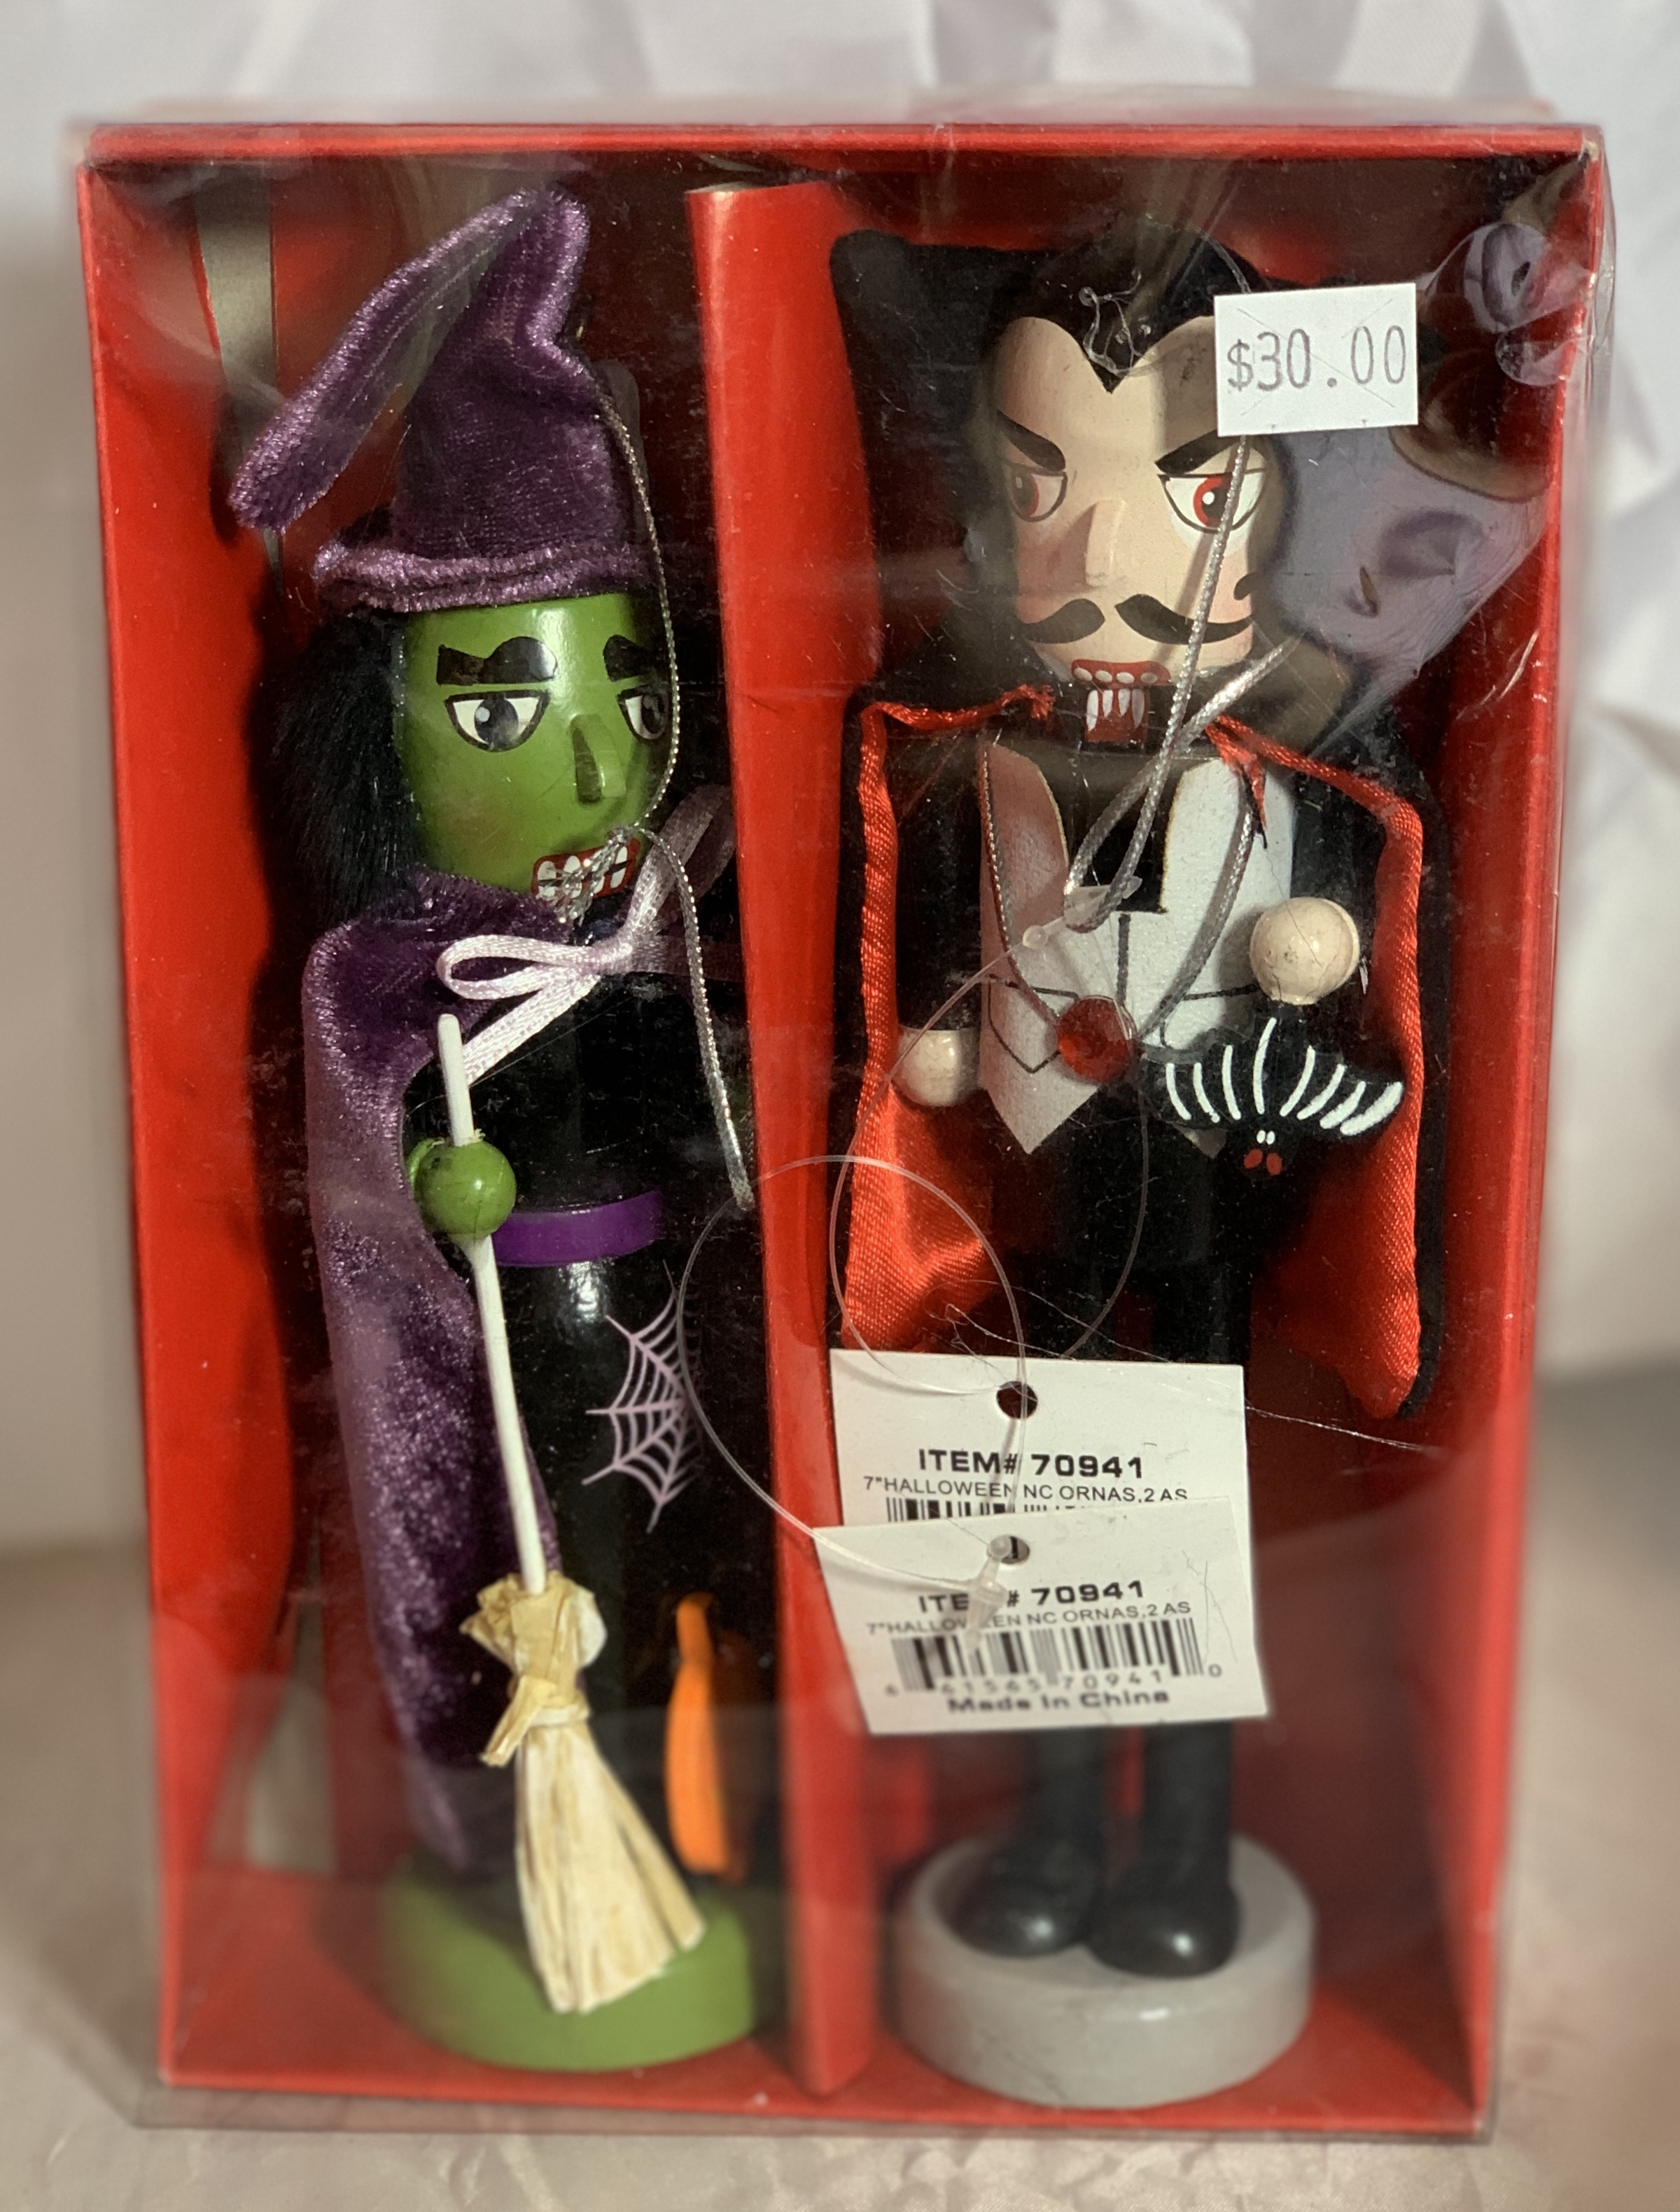 Halloween nutcracker ornament box set